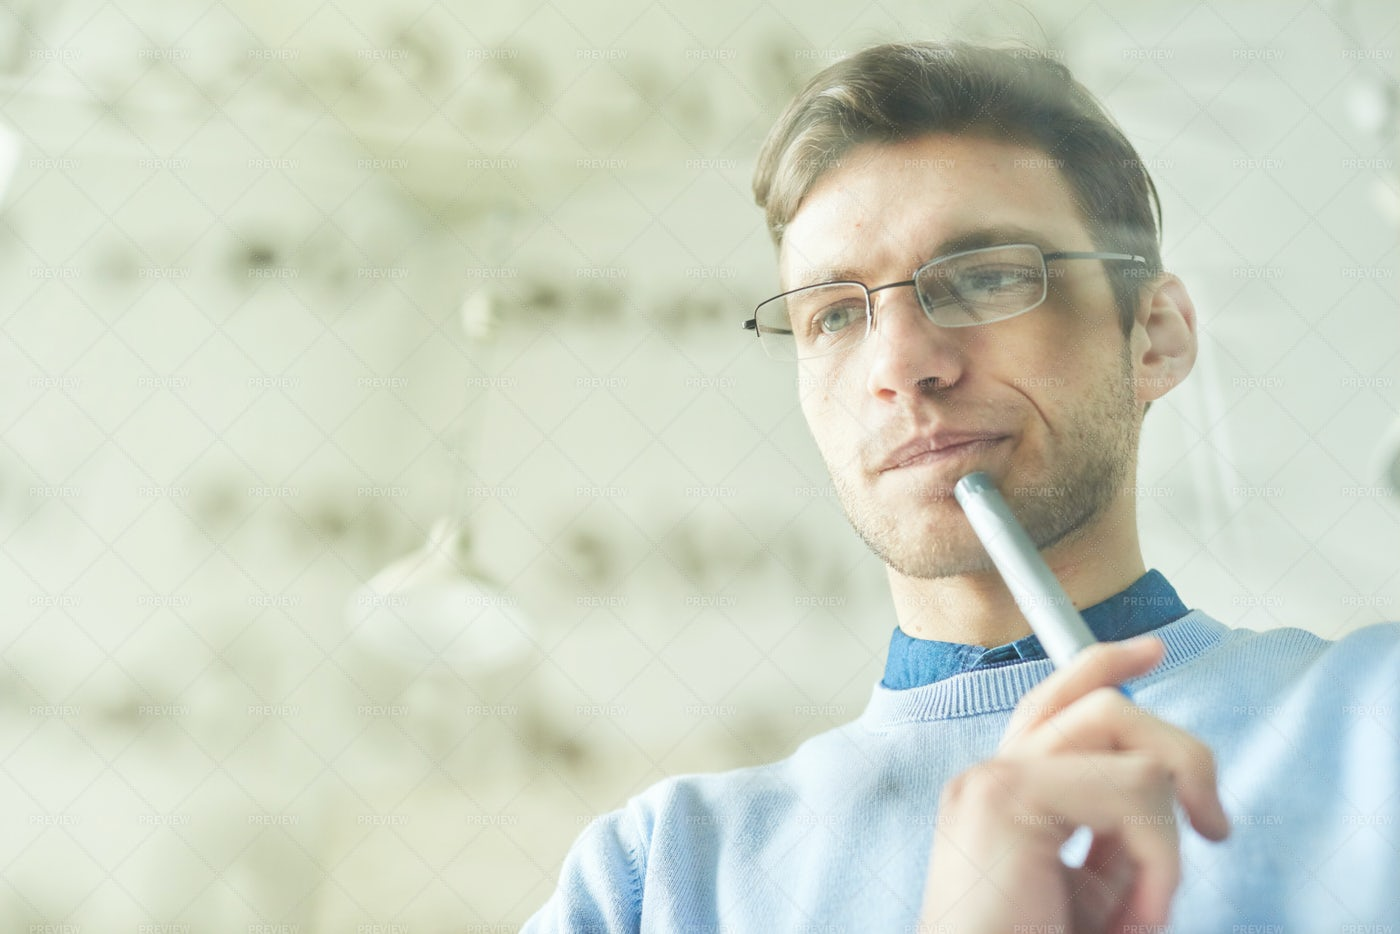 IT Professional Thinking Over Code: Stock Photos